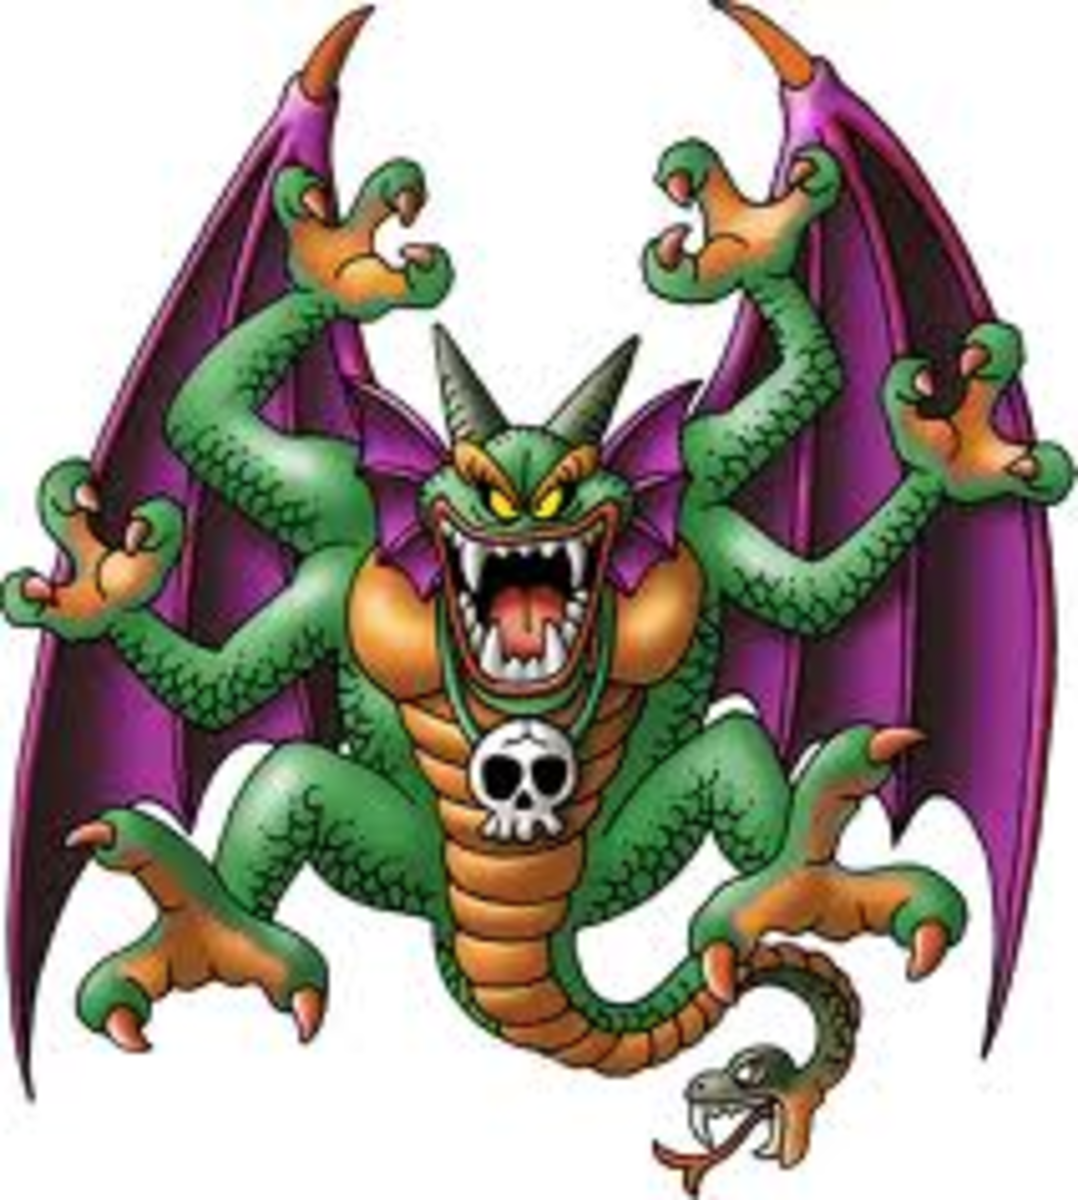 dragon-quest-ix-legacy-boss-hunter-malroth